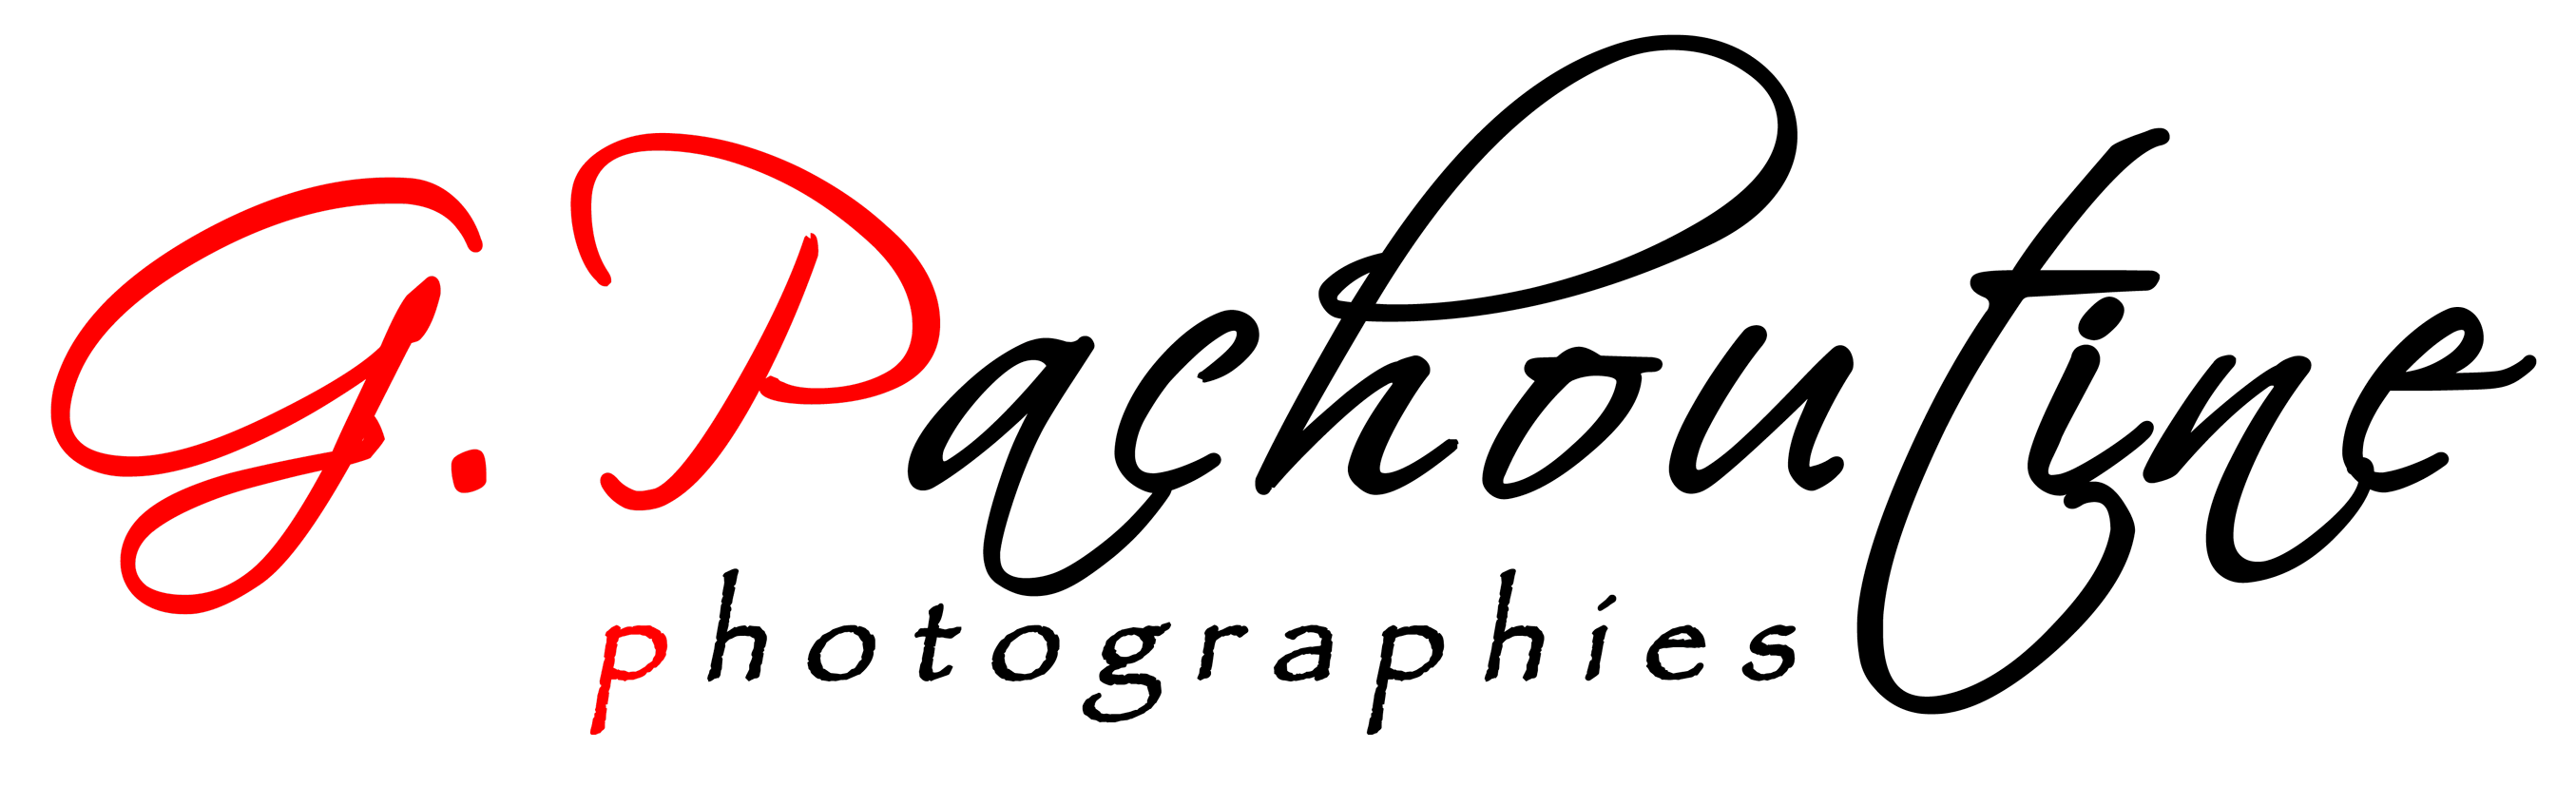 Pachoutine photographies